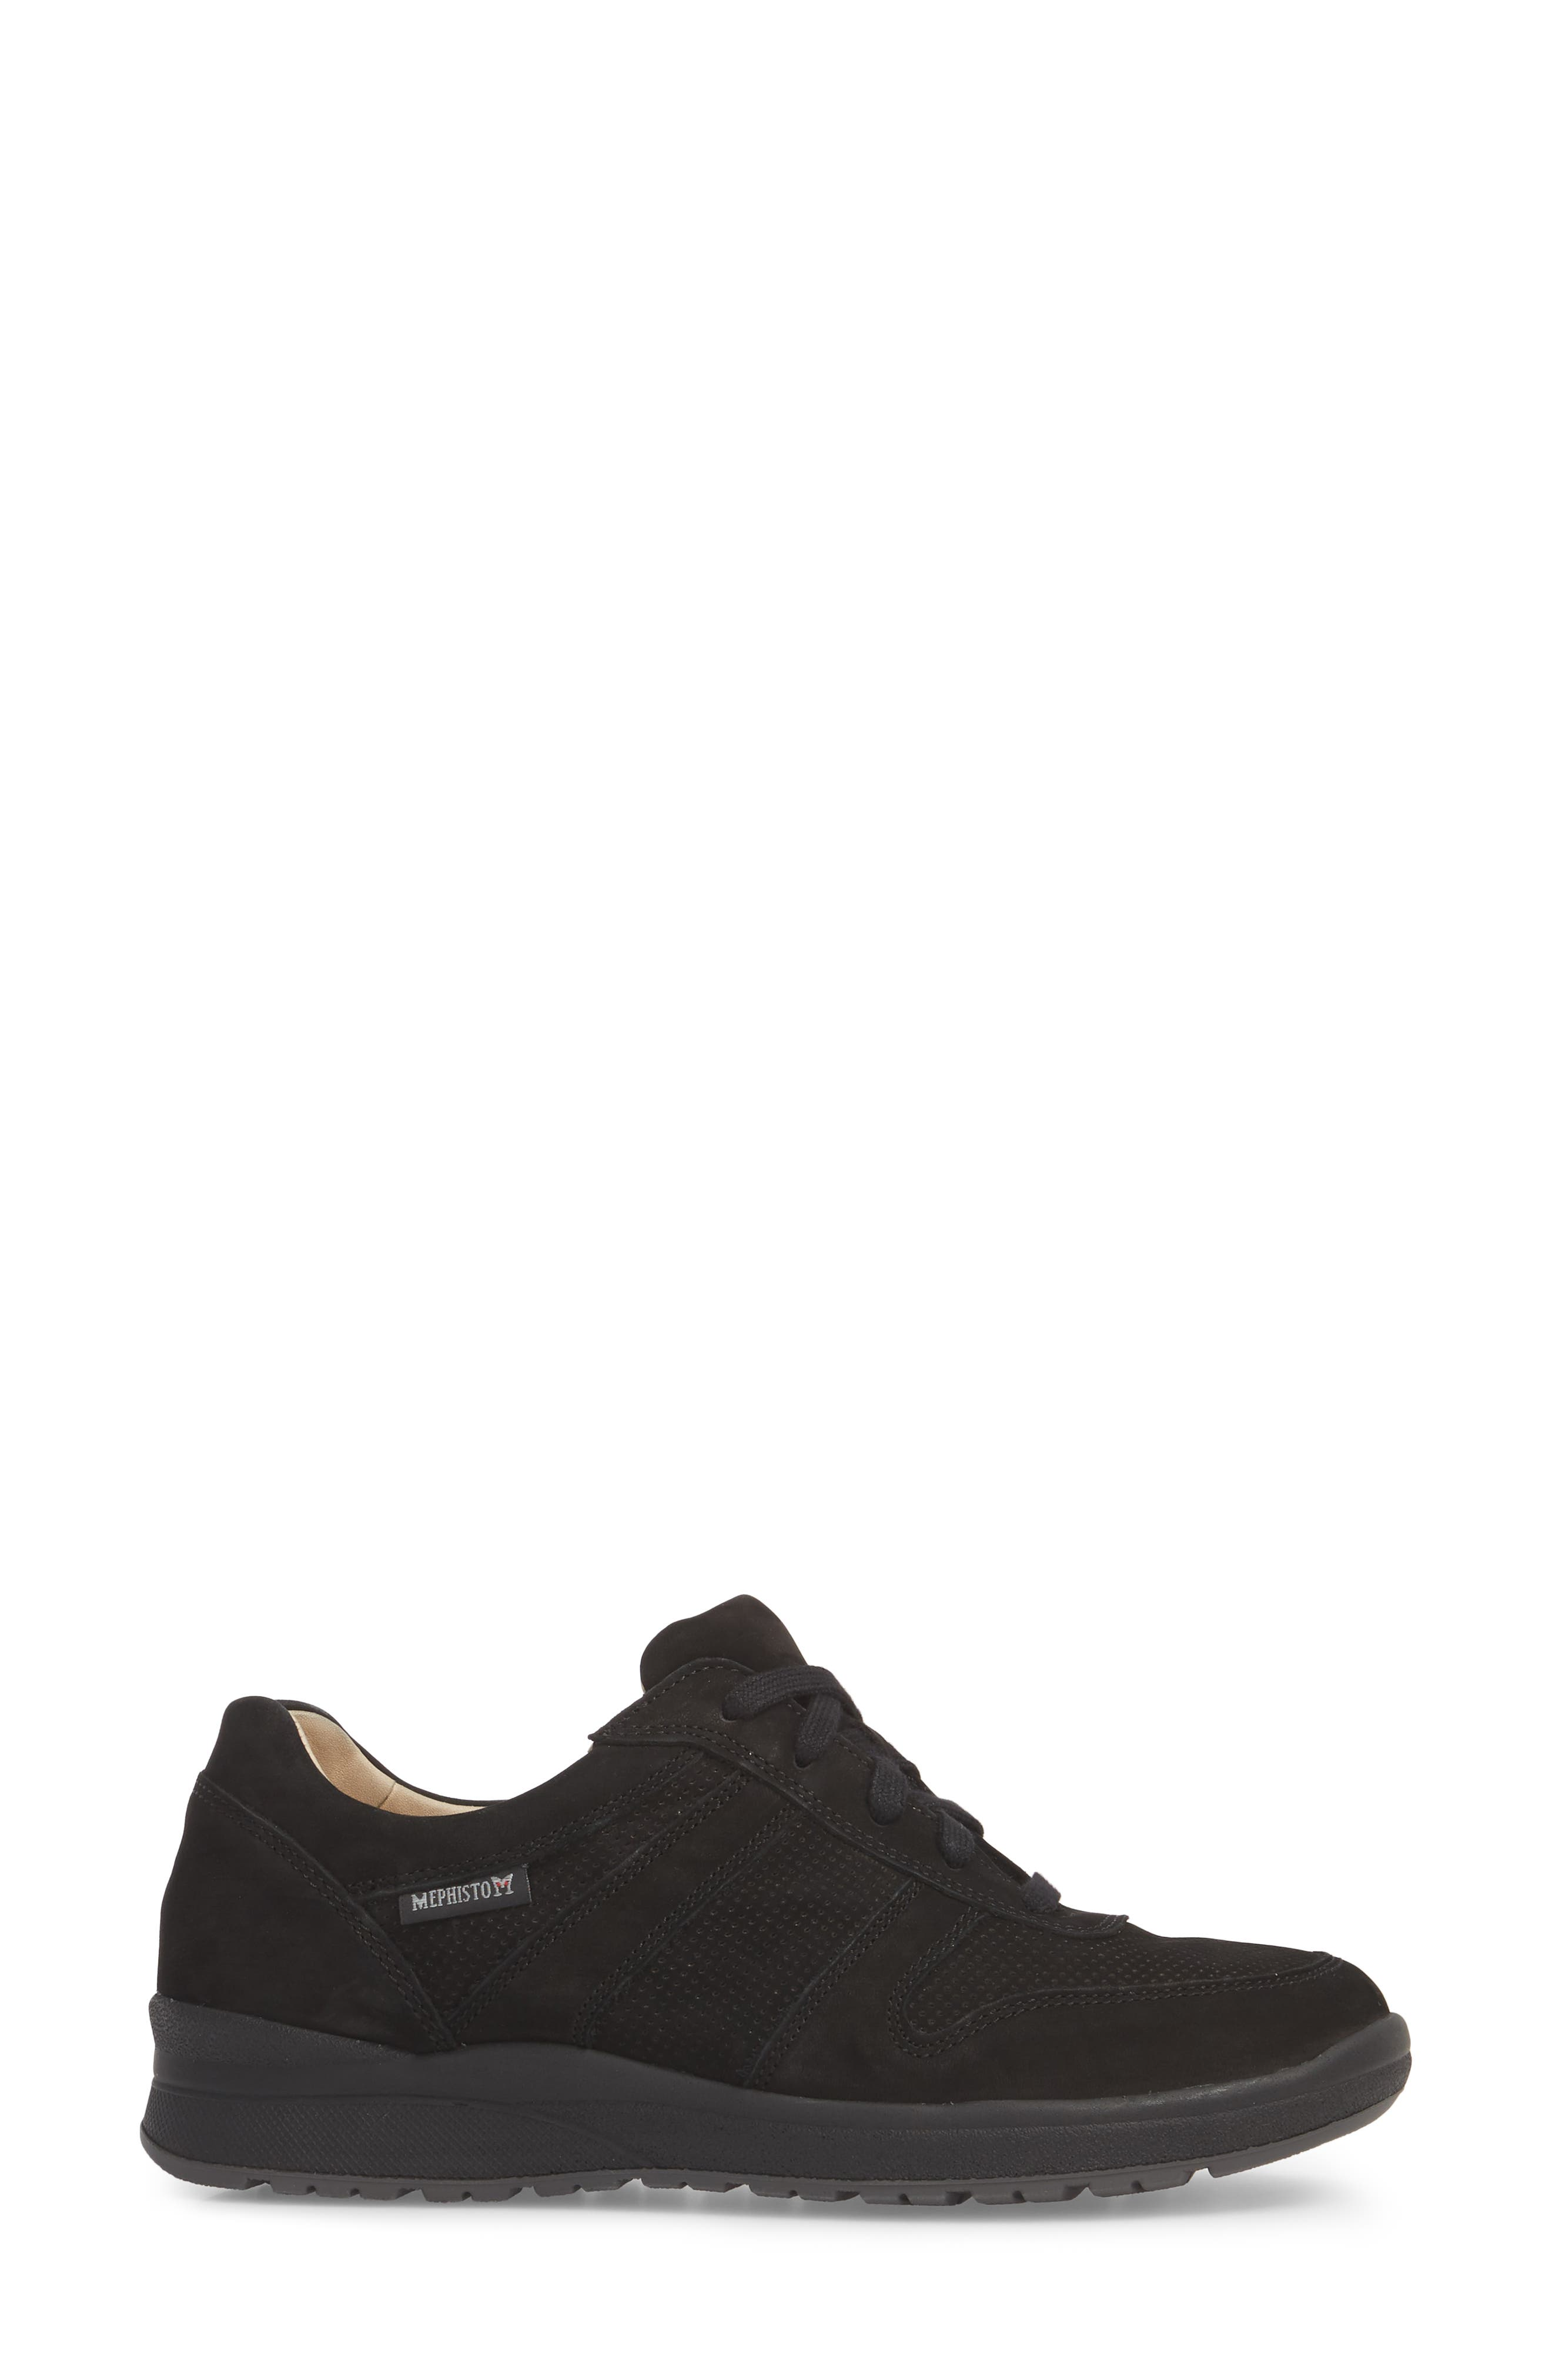 MEPHISTO, Rebecca Perforated Sneaker, Alternate thumbnail 3, color, 002